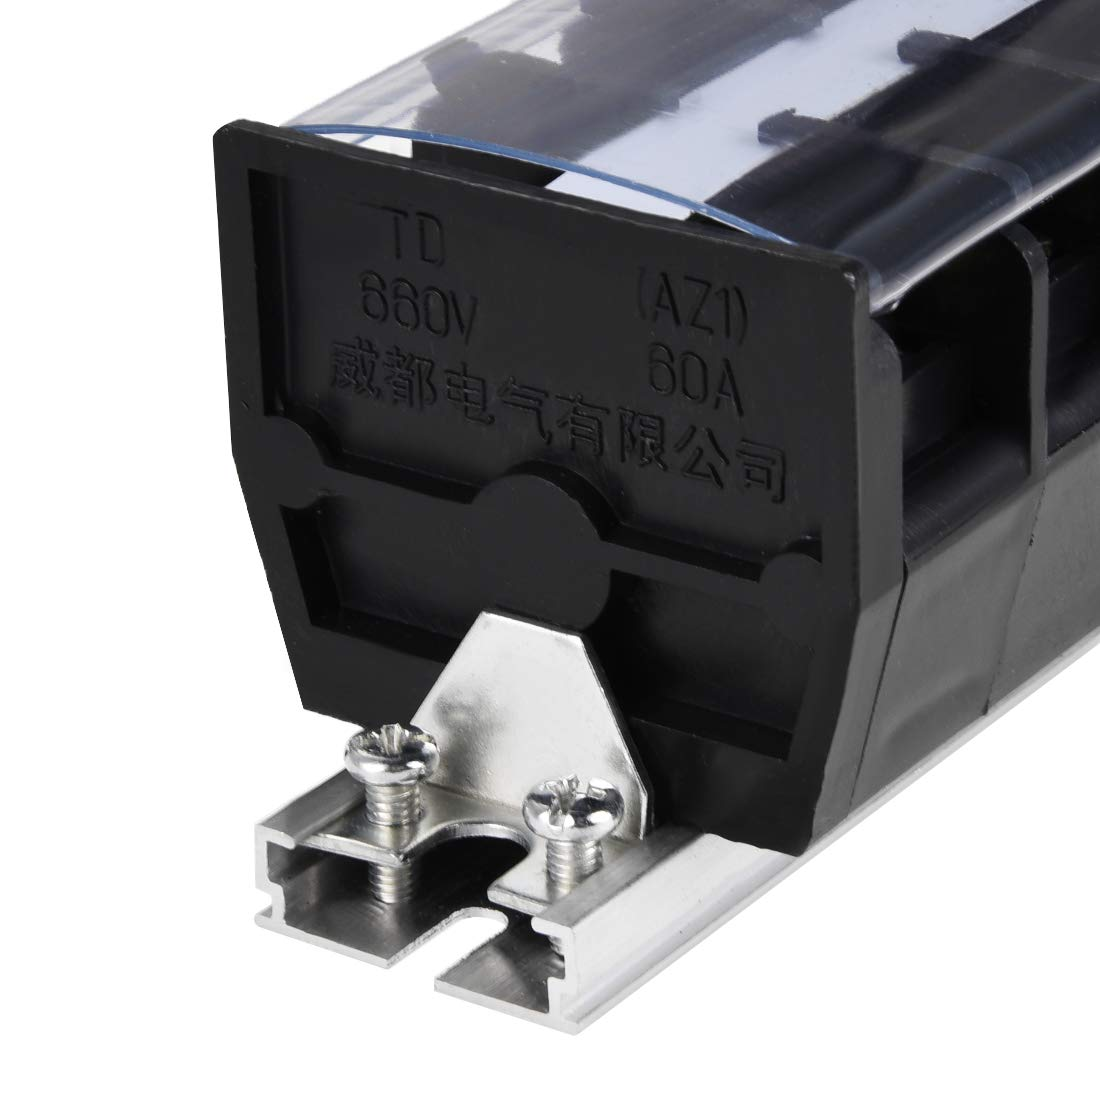 uxcell Barrier Terminal Strip Block 20 Positions 660V 20A Dual Rows DIN Rail Base Screw Connector with Cover TD-2020